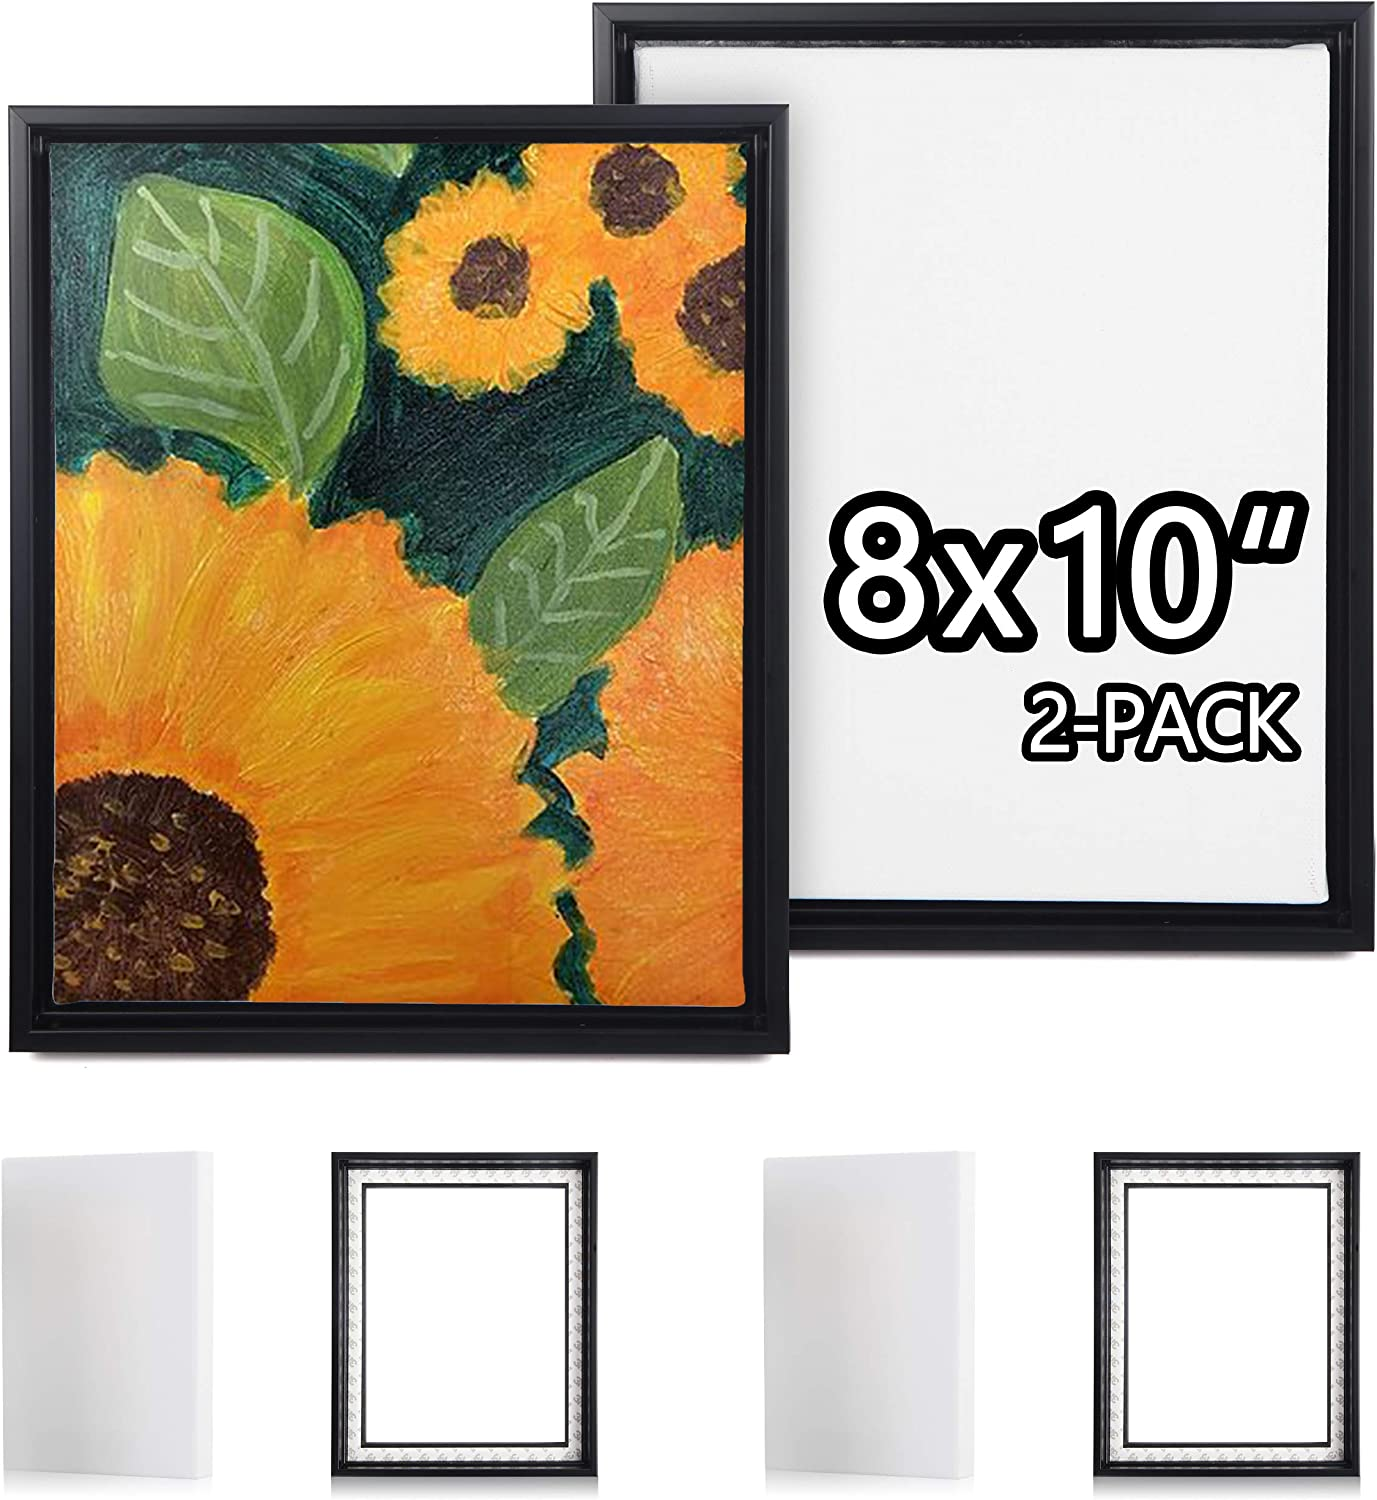 Picture Frame Set with Blank 8x10 Stretched Canvases with Floating Frames of 2 Pack, Studio Plastic Floater Frame for 2/3'' Deep Artwork & Canvas Print, Tabletop or Wall Gallery Display, Black